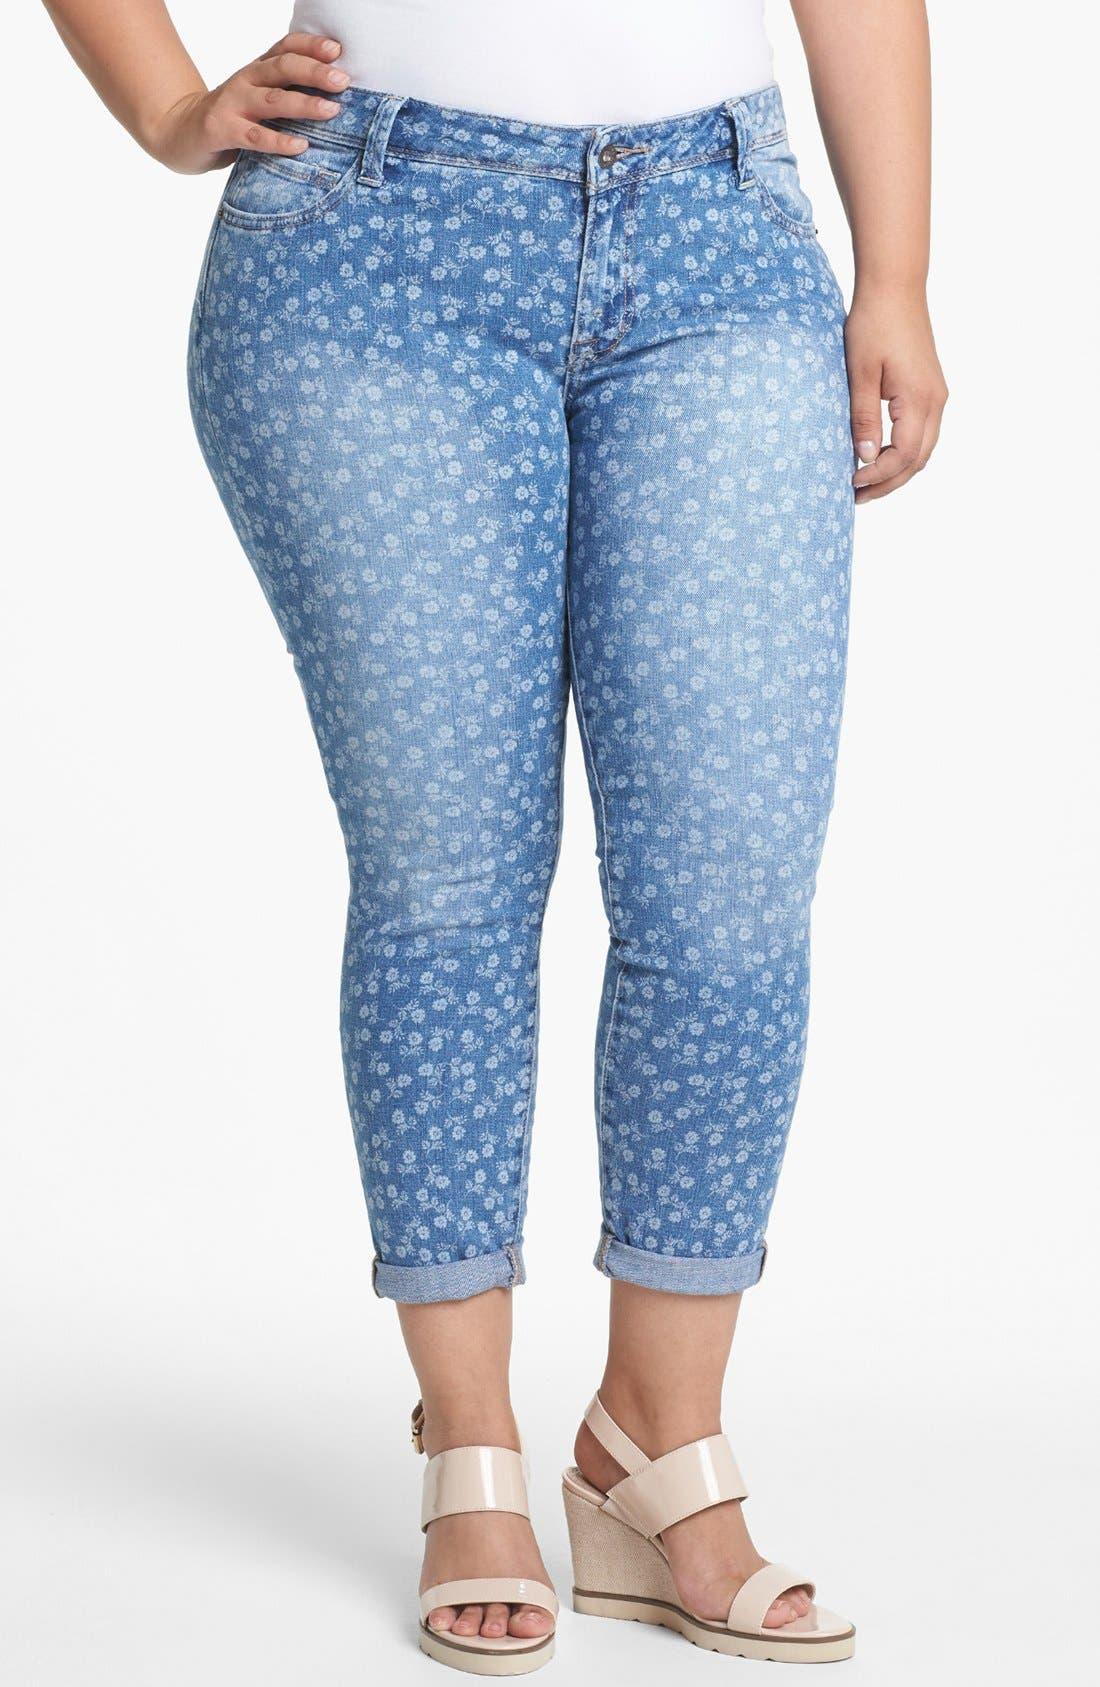 Alternate Image 1 Selected - Lucky Brand 'Ginger' Print Boyfriend Jeans (Plus Size)